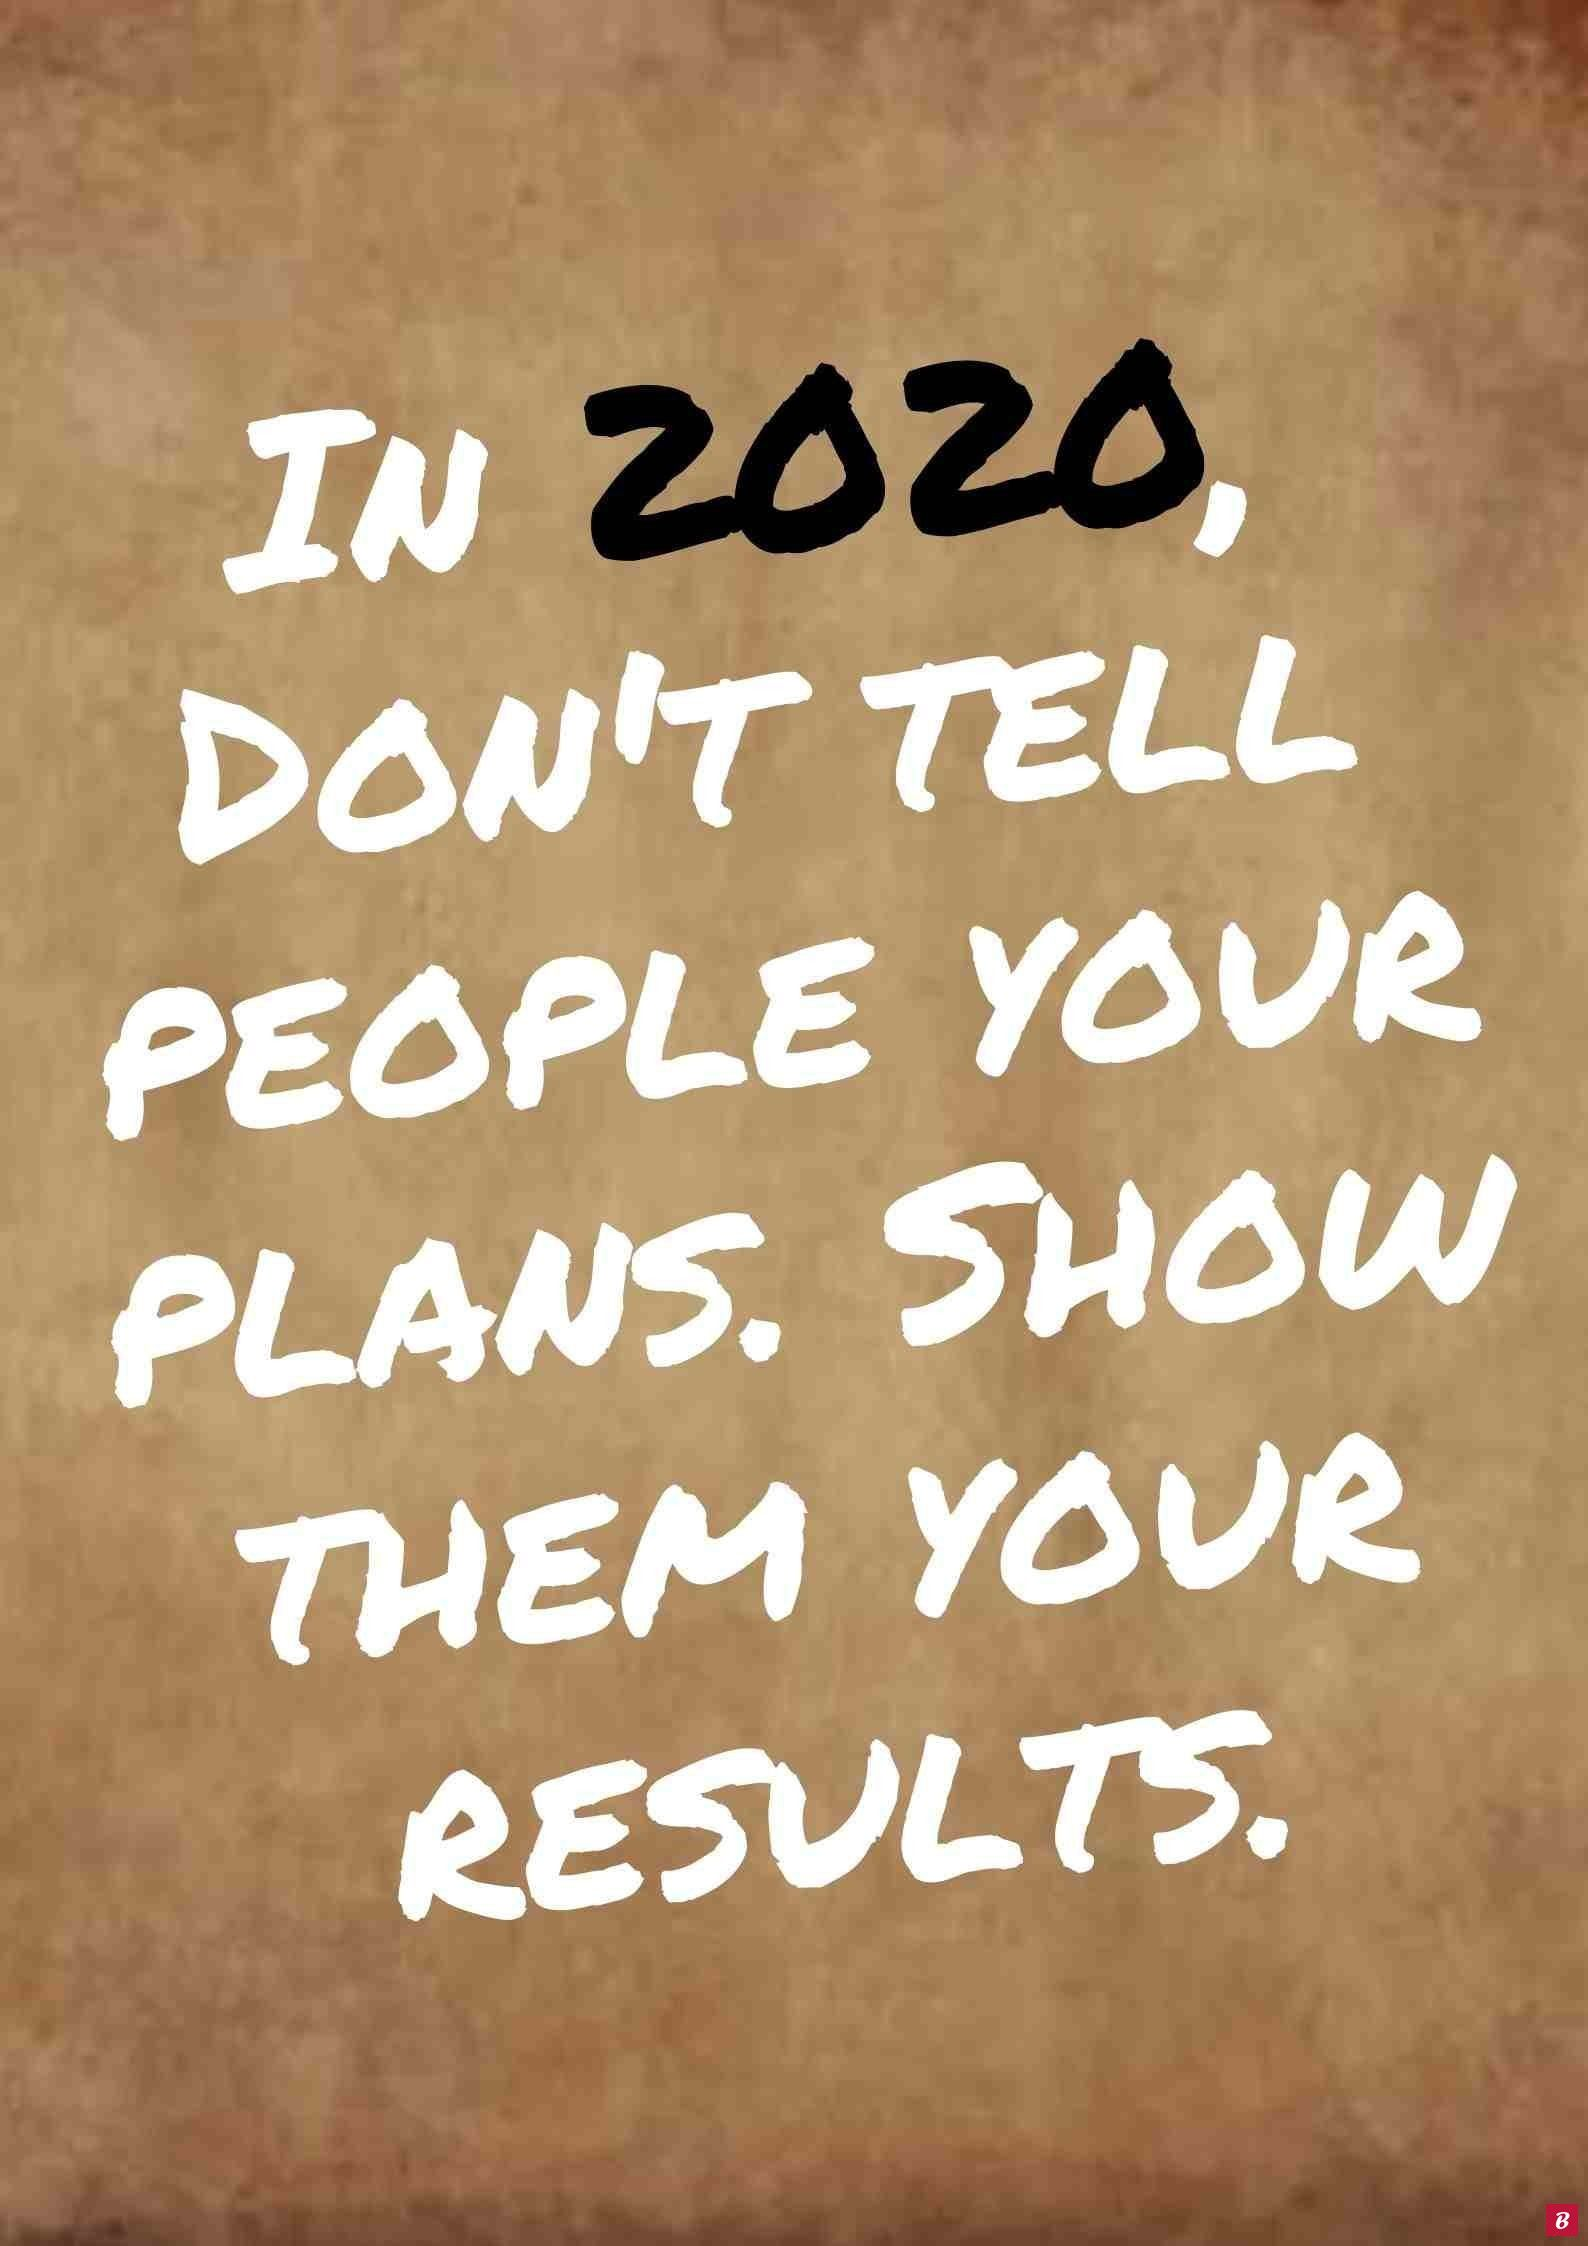 Resolution quotes fitness for 2020 year. In 2020, Don't